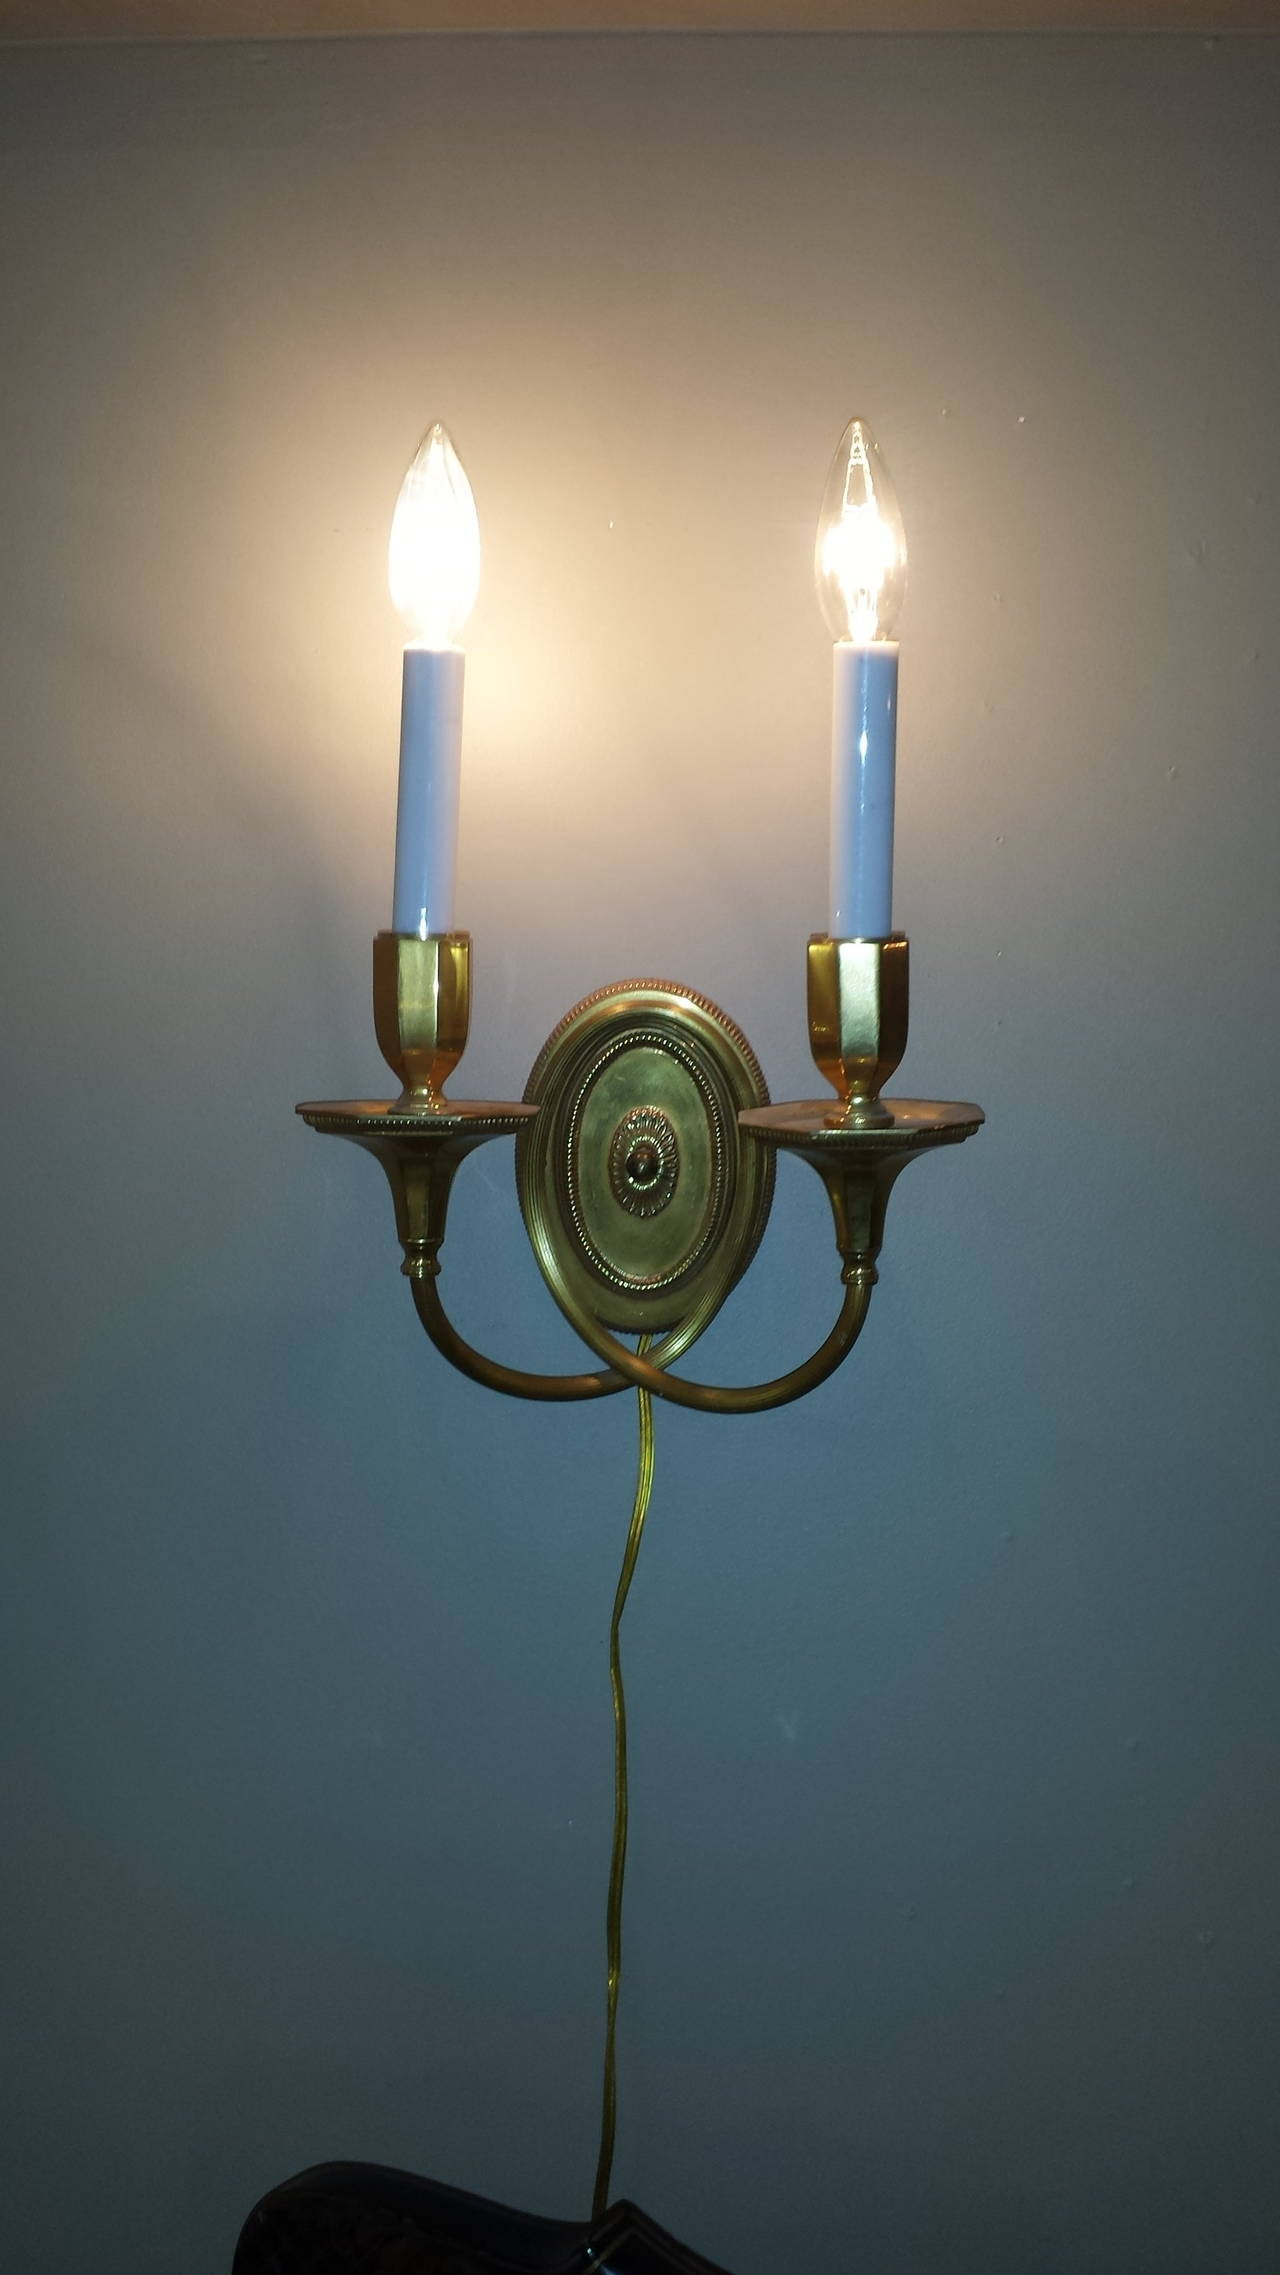 Wall Sconces Double : Solid Brass, Double-Arm Wall Sconces For Sale at 1stdibs